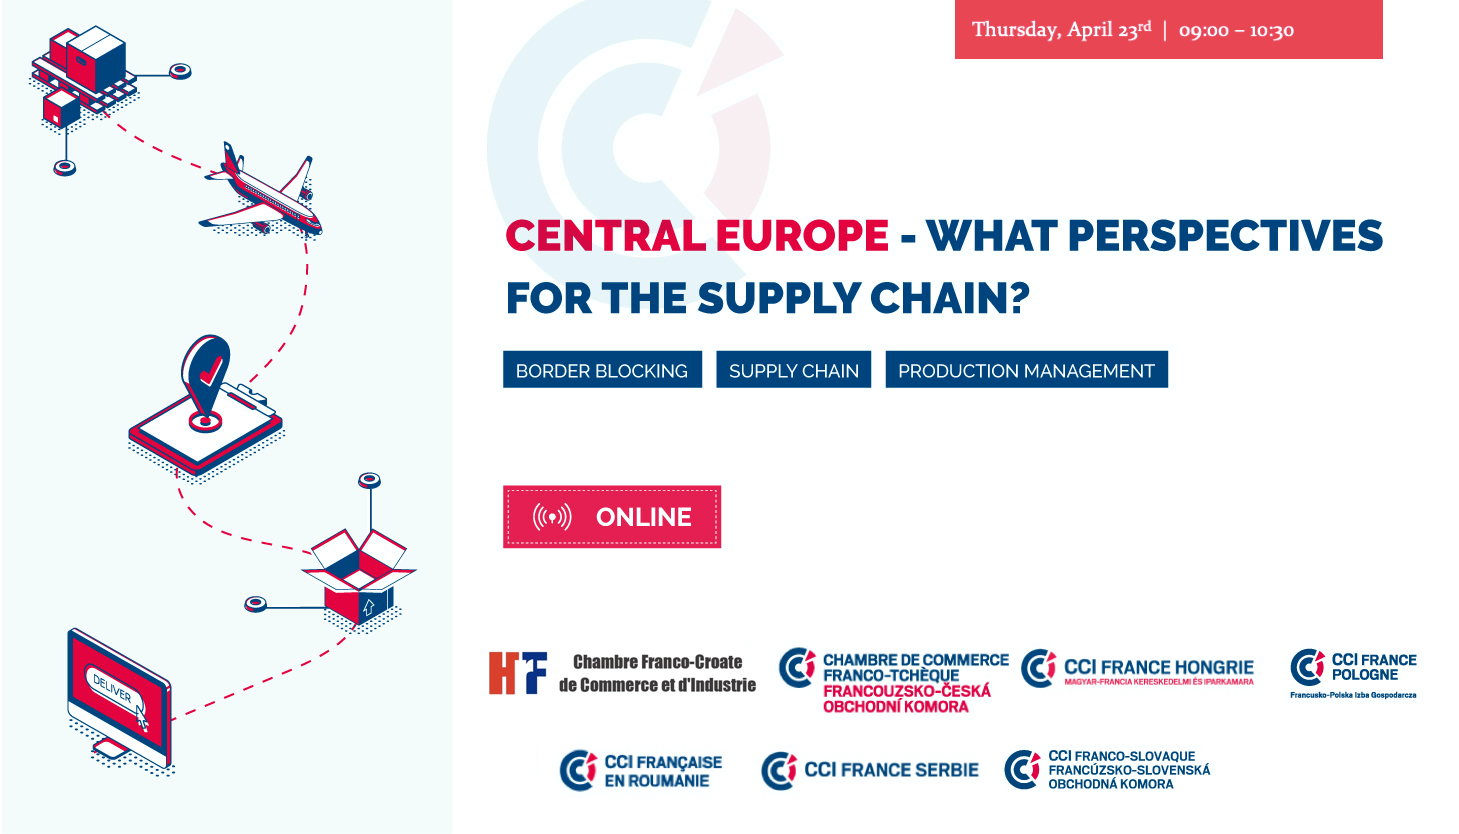 Central Europe - what perspectives for the supply chain?